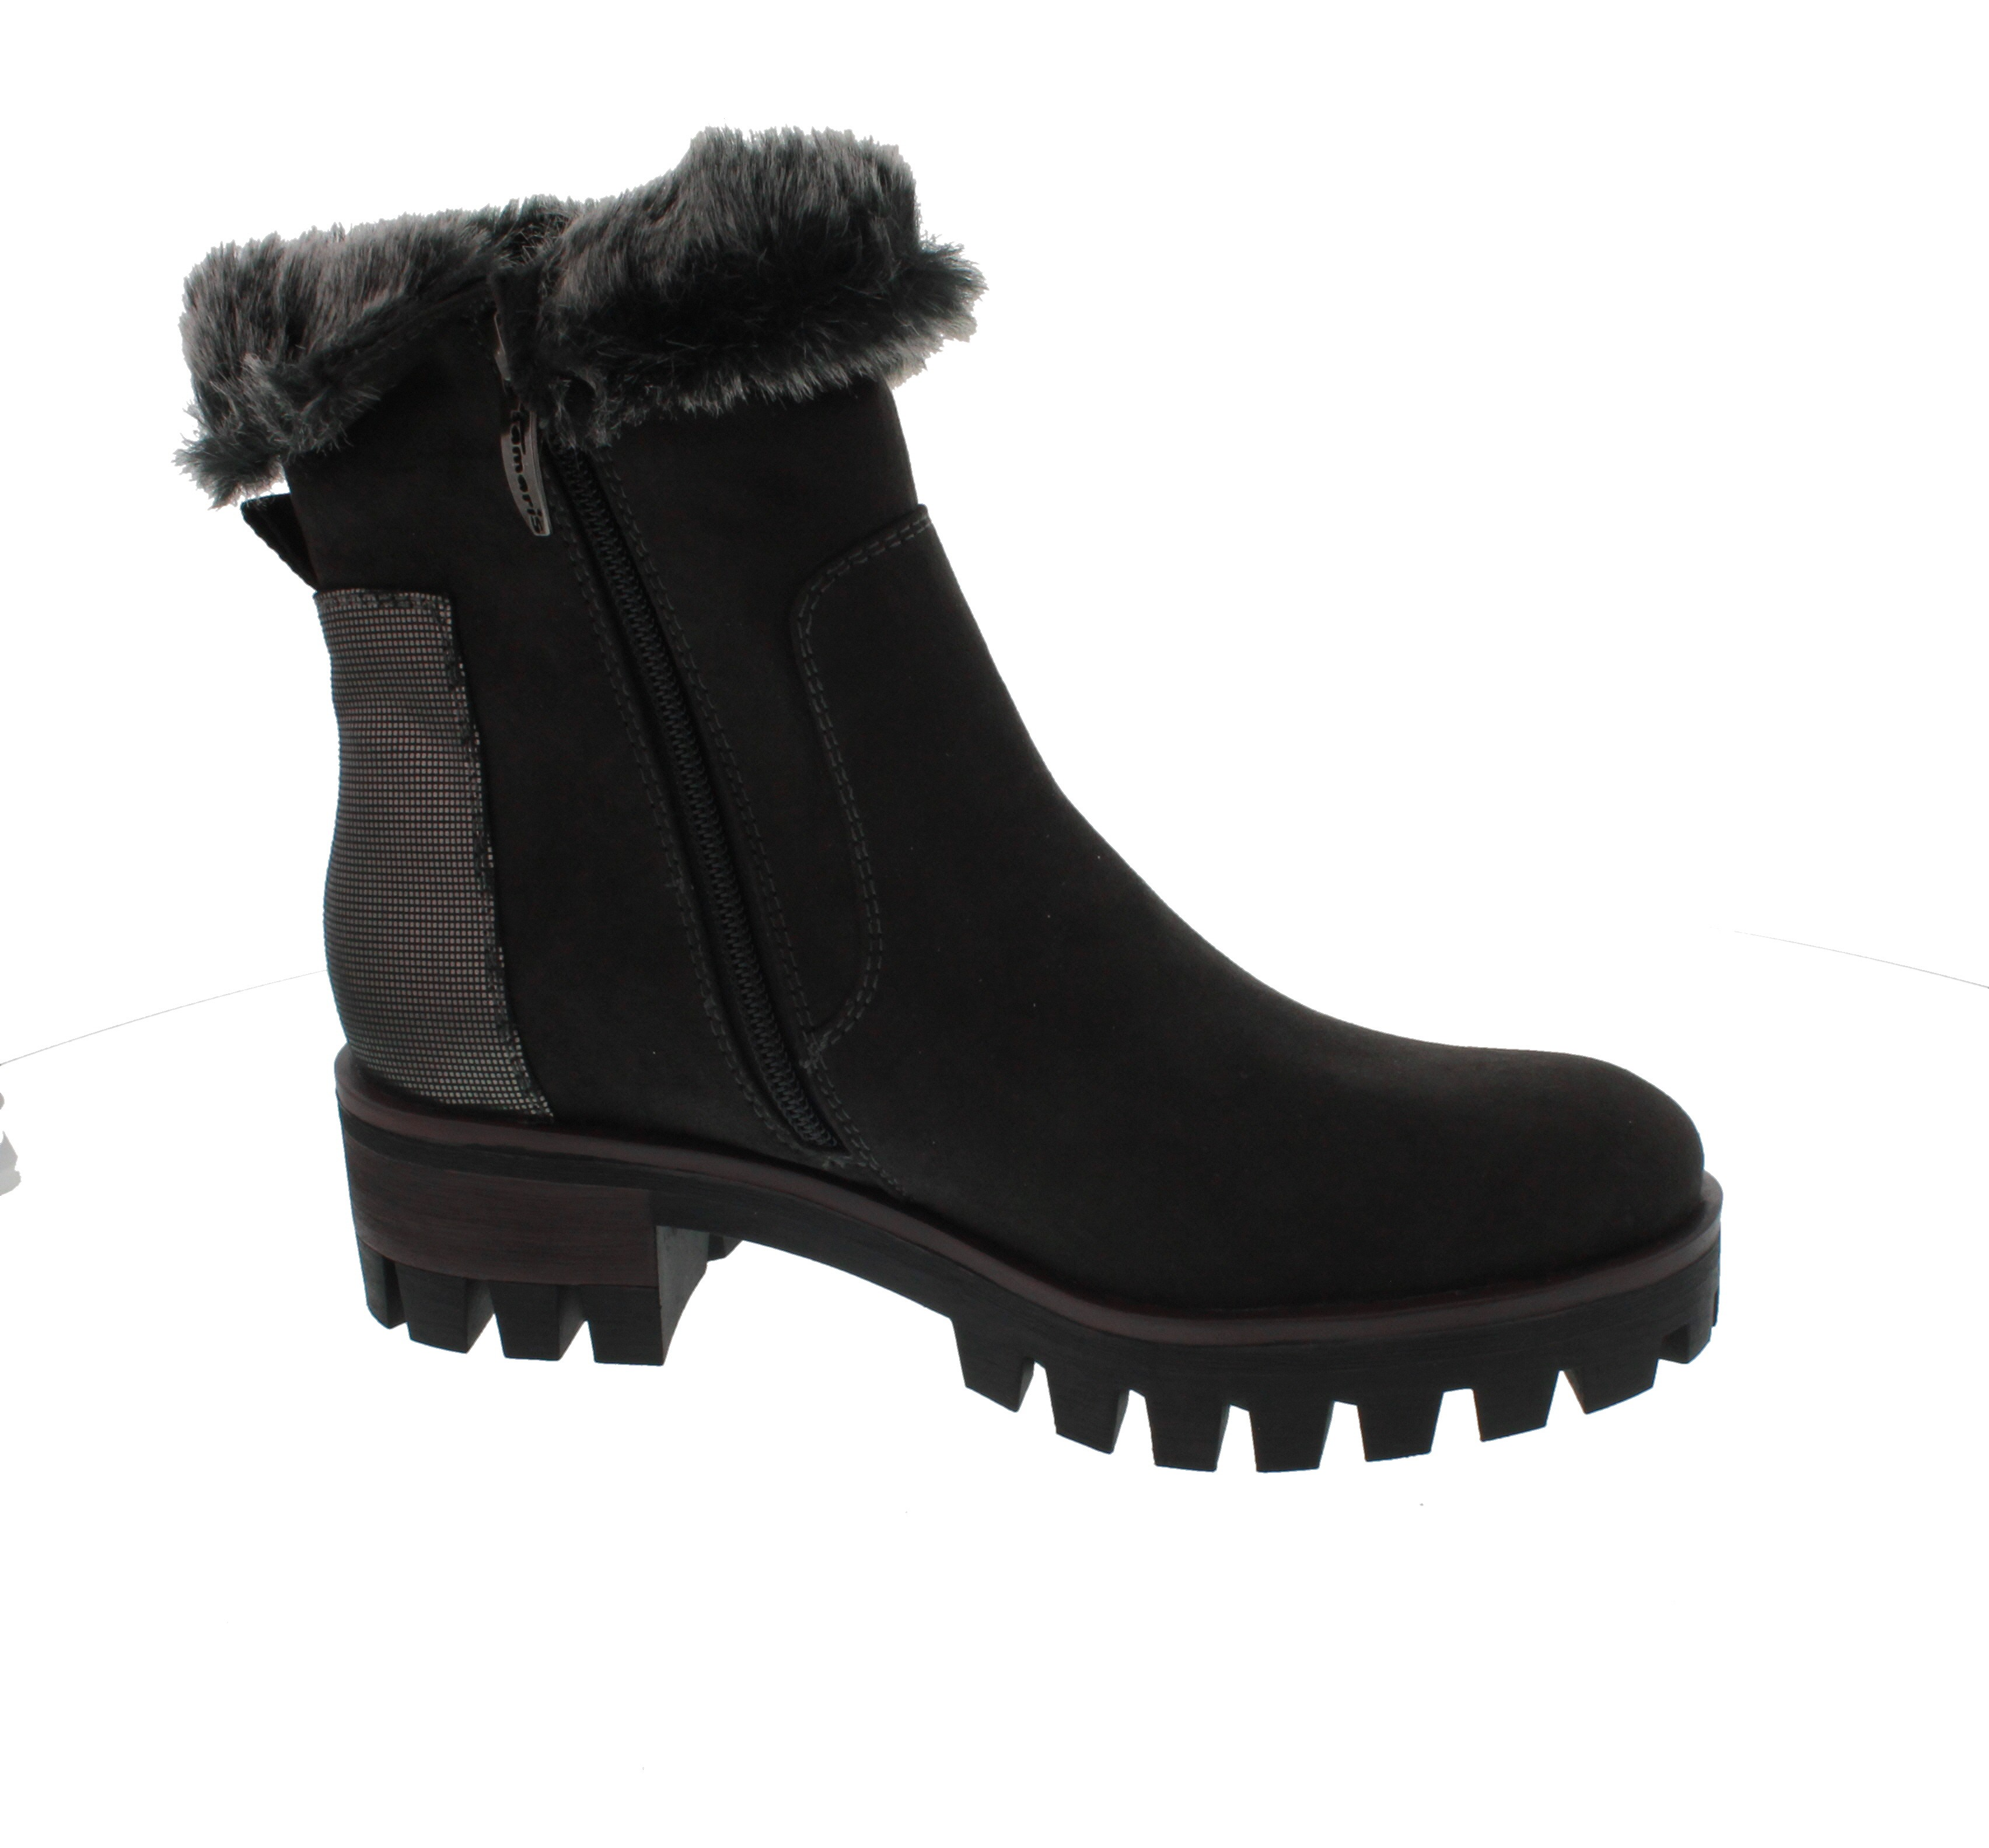 best authentic 8f0a2 a14d9 Tamaris, Stiefel in grau